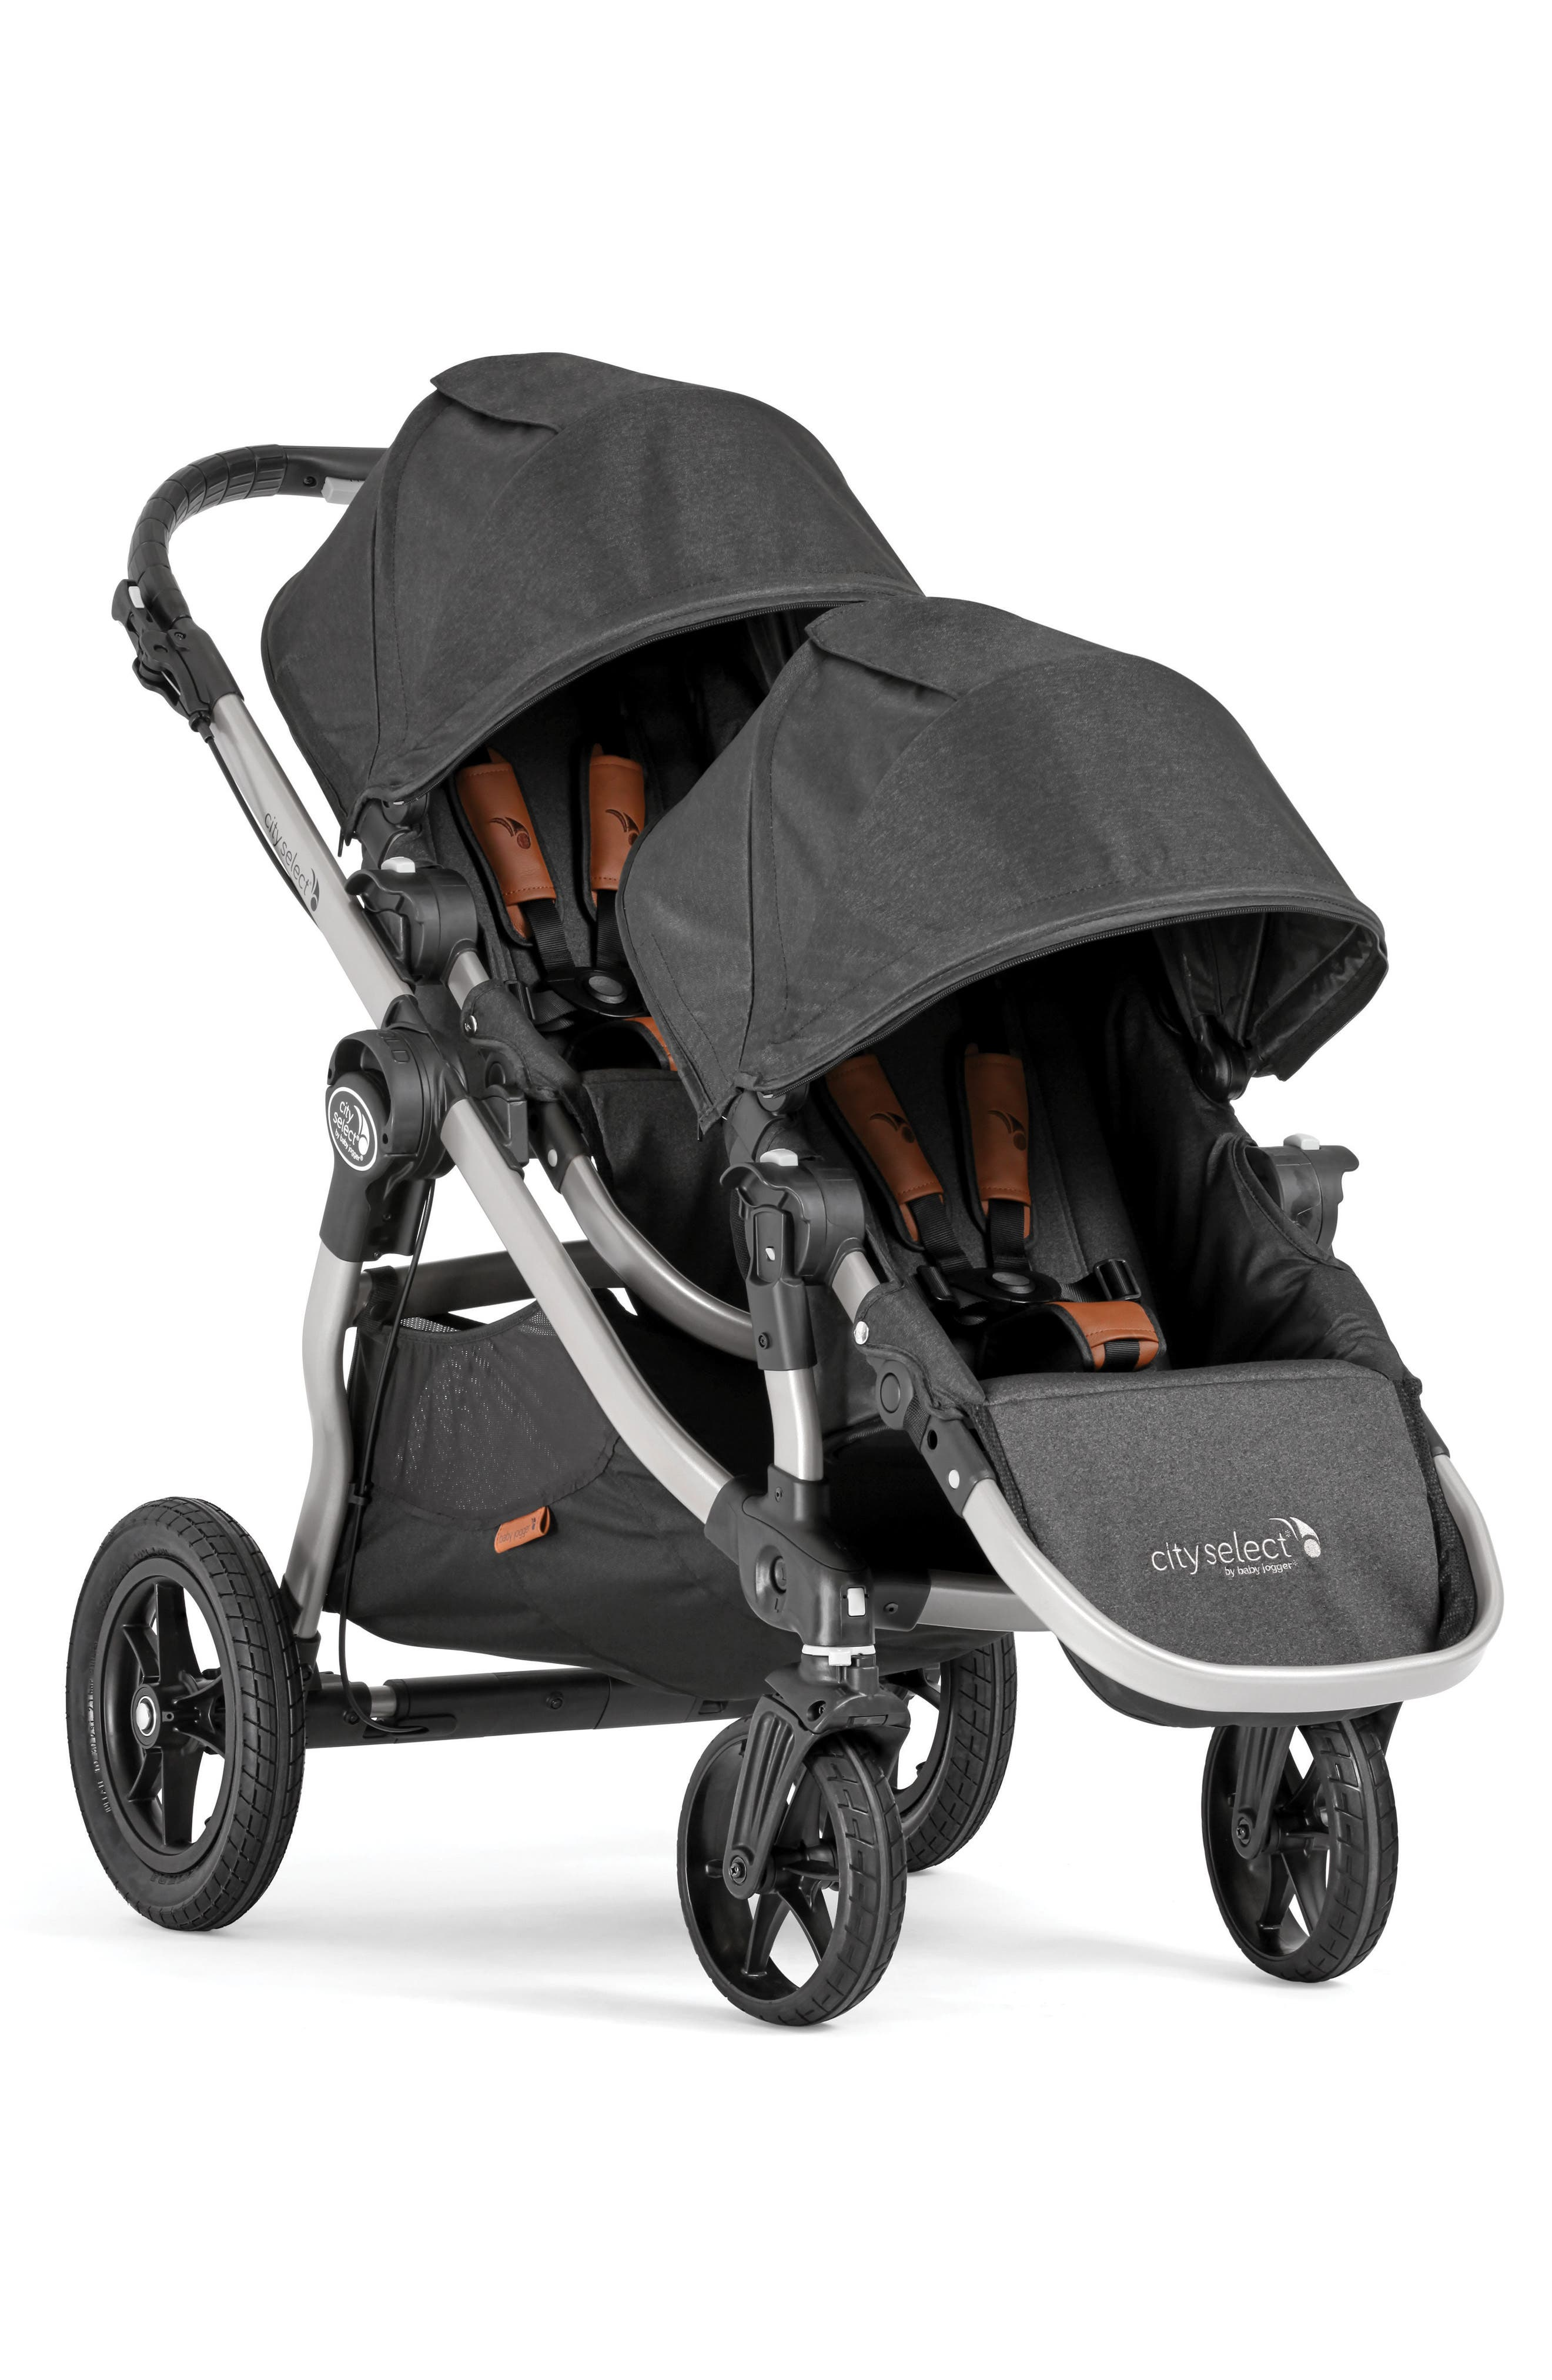 City Select<sup>®</sup> 2018 Special Edition 10-Year Anniversary Stroller,                             Alternate thumbnail 7, color,                             Grey